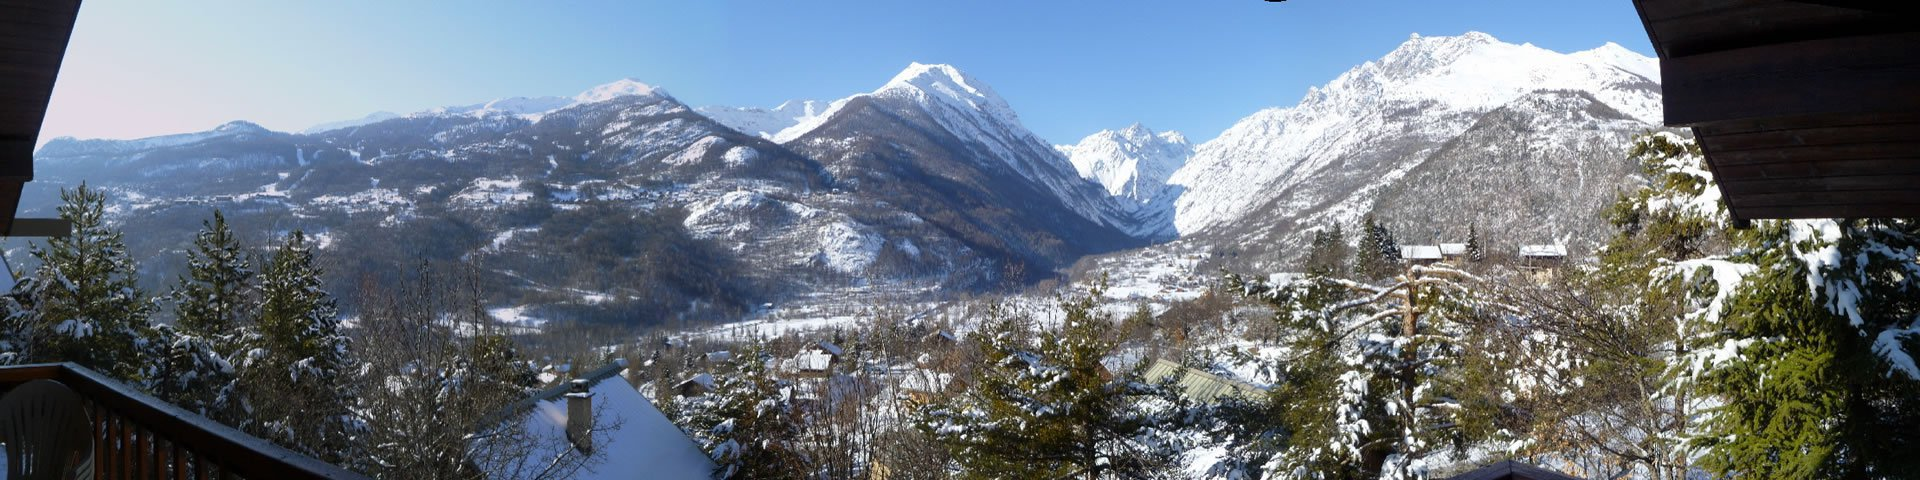 chalet ailefroide self catering accommodation in french alps